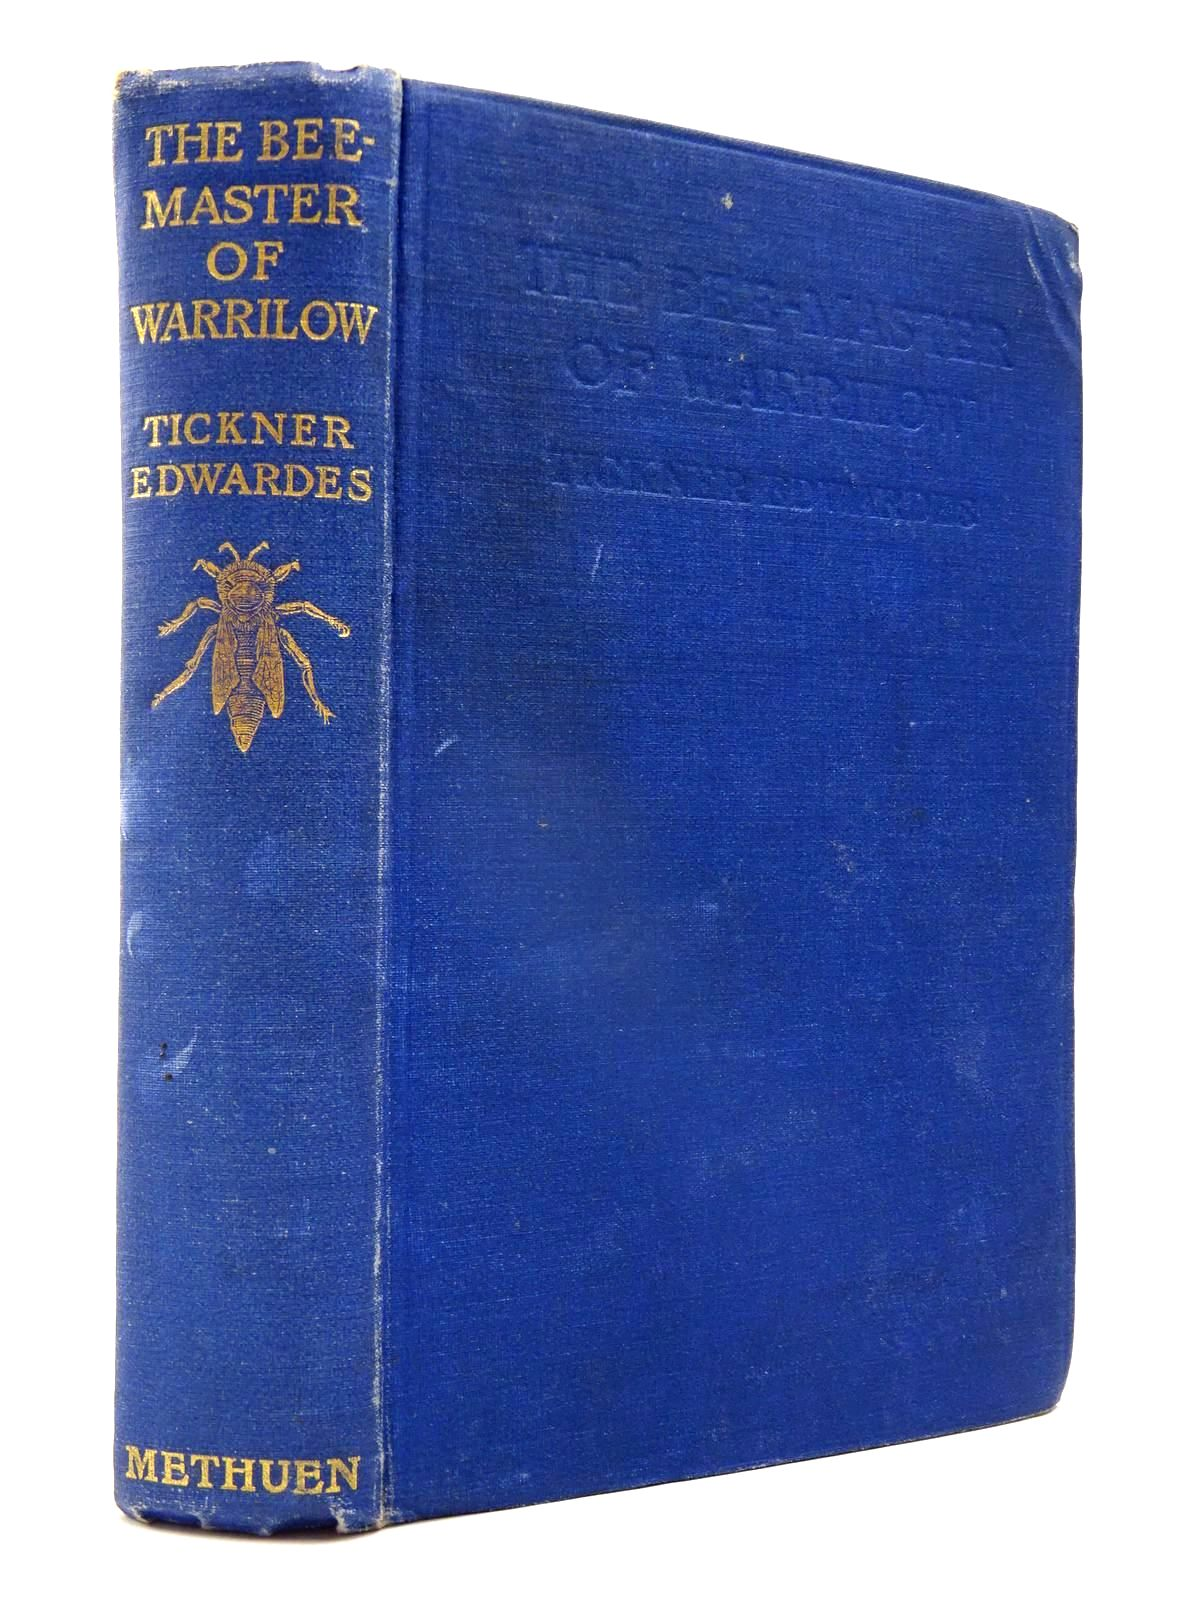 Photo of THE BEE-MASTER OF WARRILOW written by Edwardes, Tickner published by Methuen & Co. Ltd. (STOCK CODE: 2130121)  for sale by Stella & Rose's Books